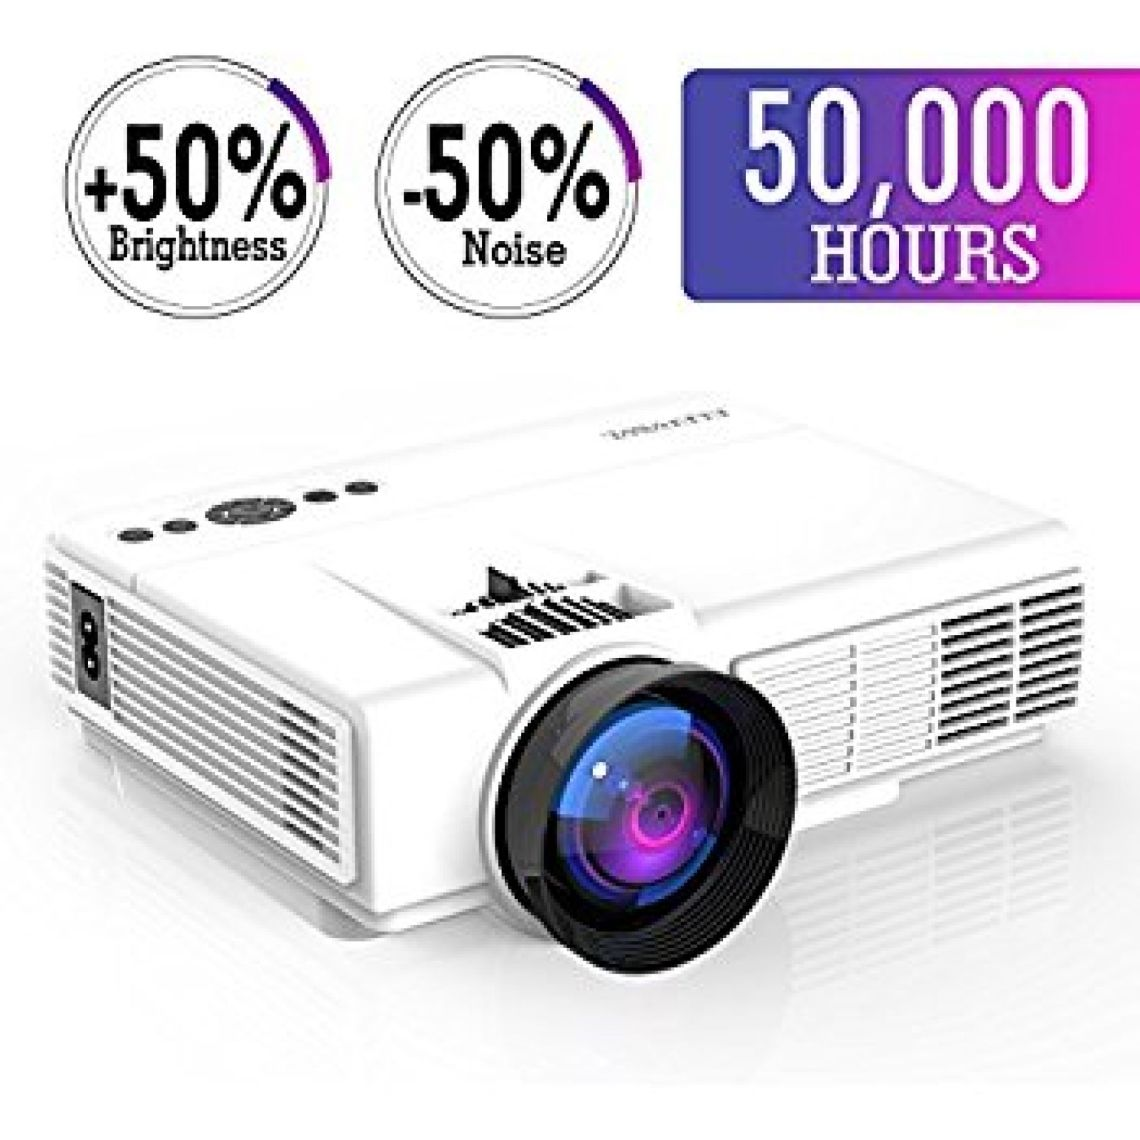 Amazon.com: Mini Projector,2018 Upgraded LED Video Projector +50% Brighter,+20% lumens Portable Projector Support 1080P HDMI USB TF VGA AV for Home Theater For Watching 2018 FIFA World Cup: Electronics